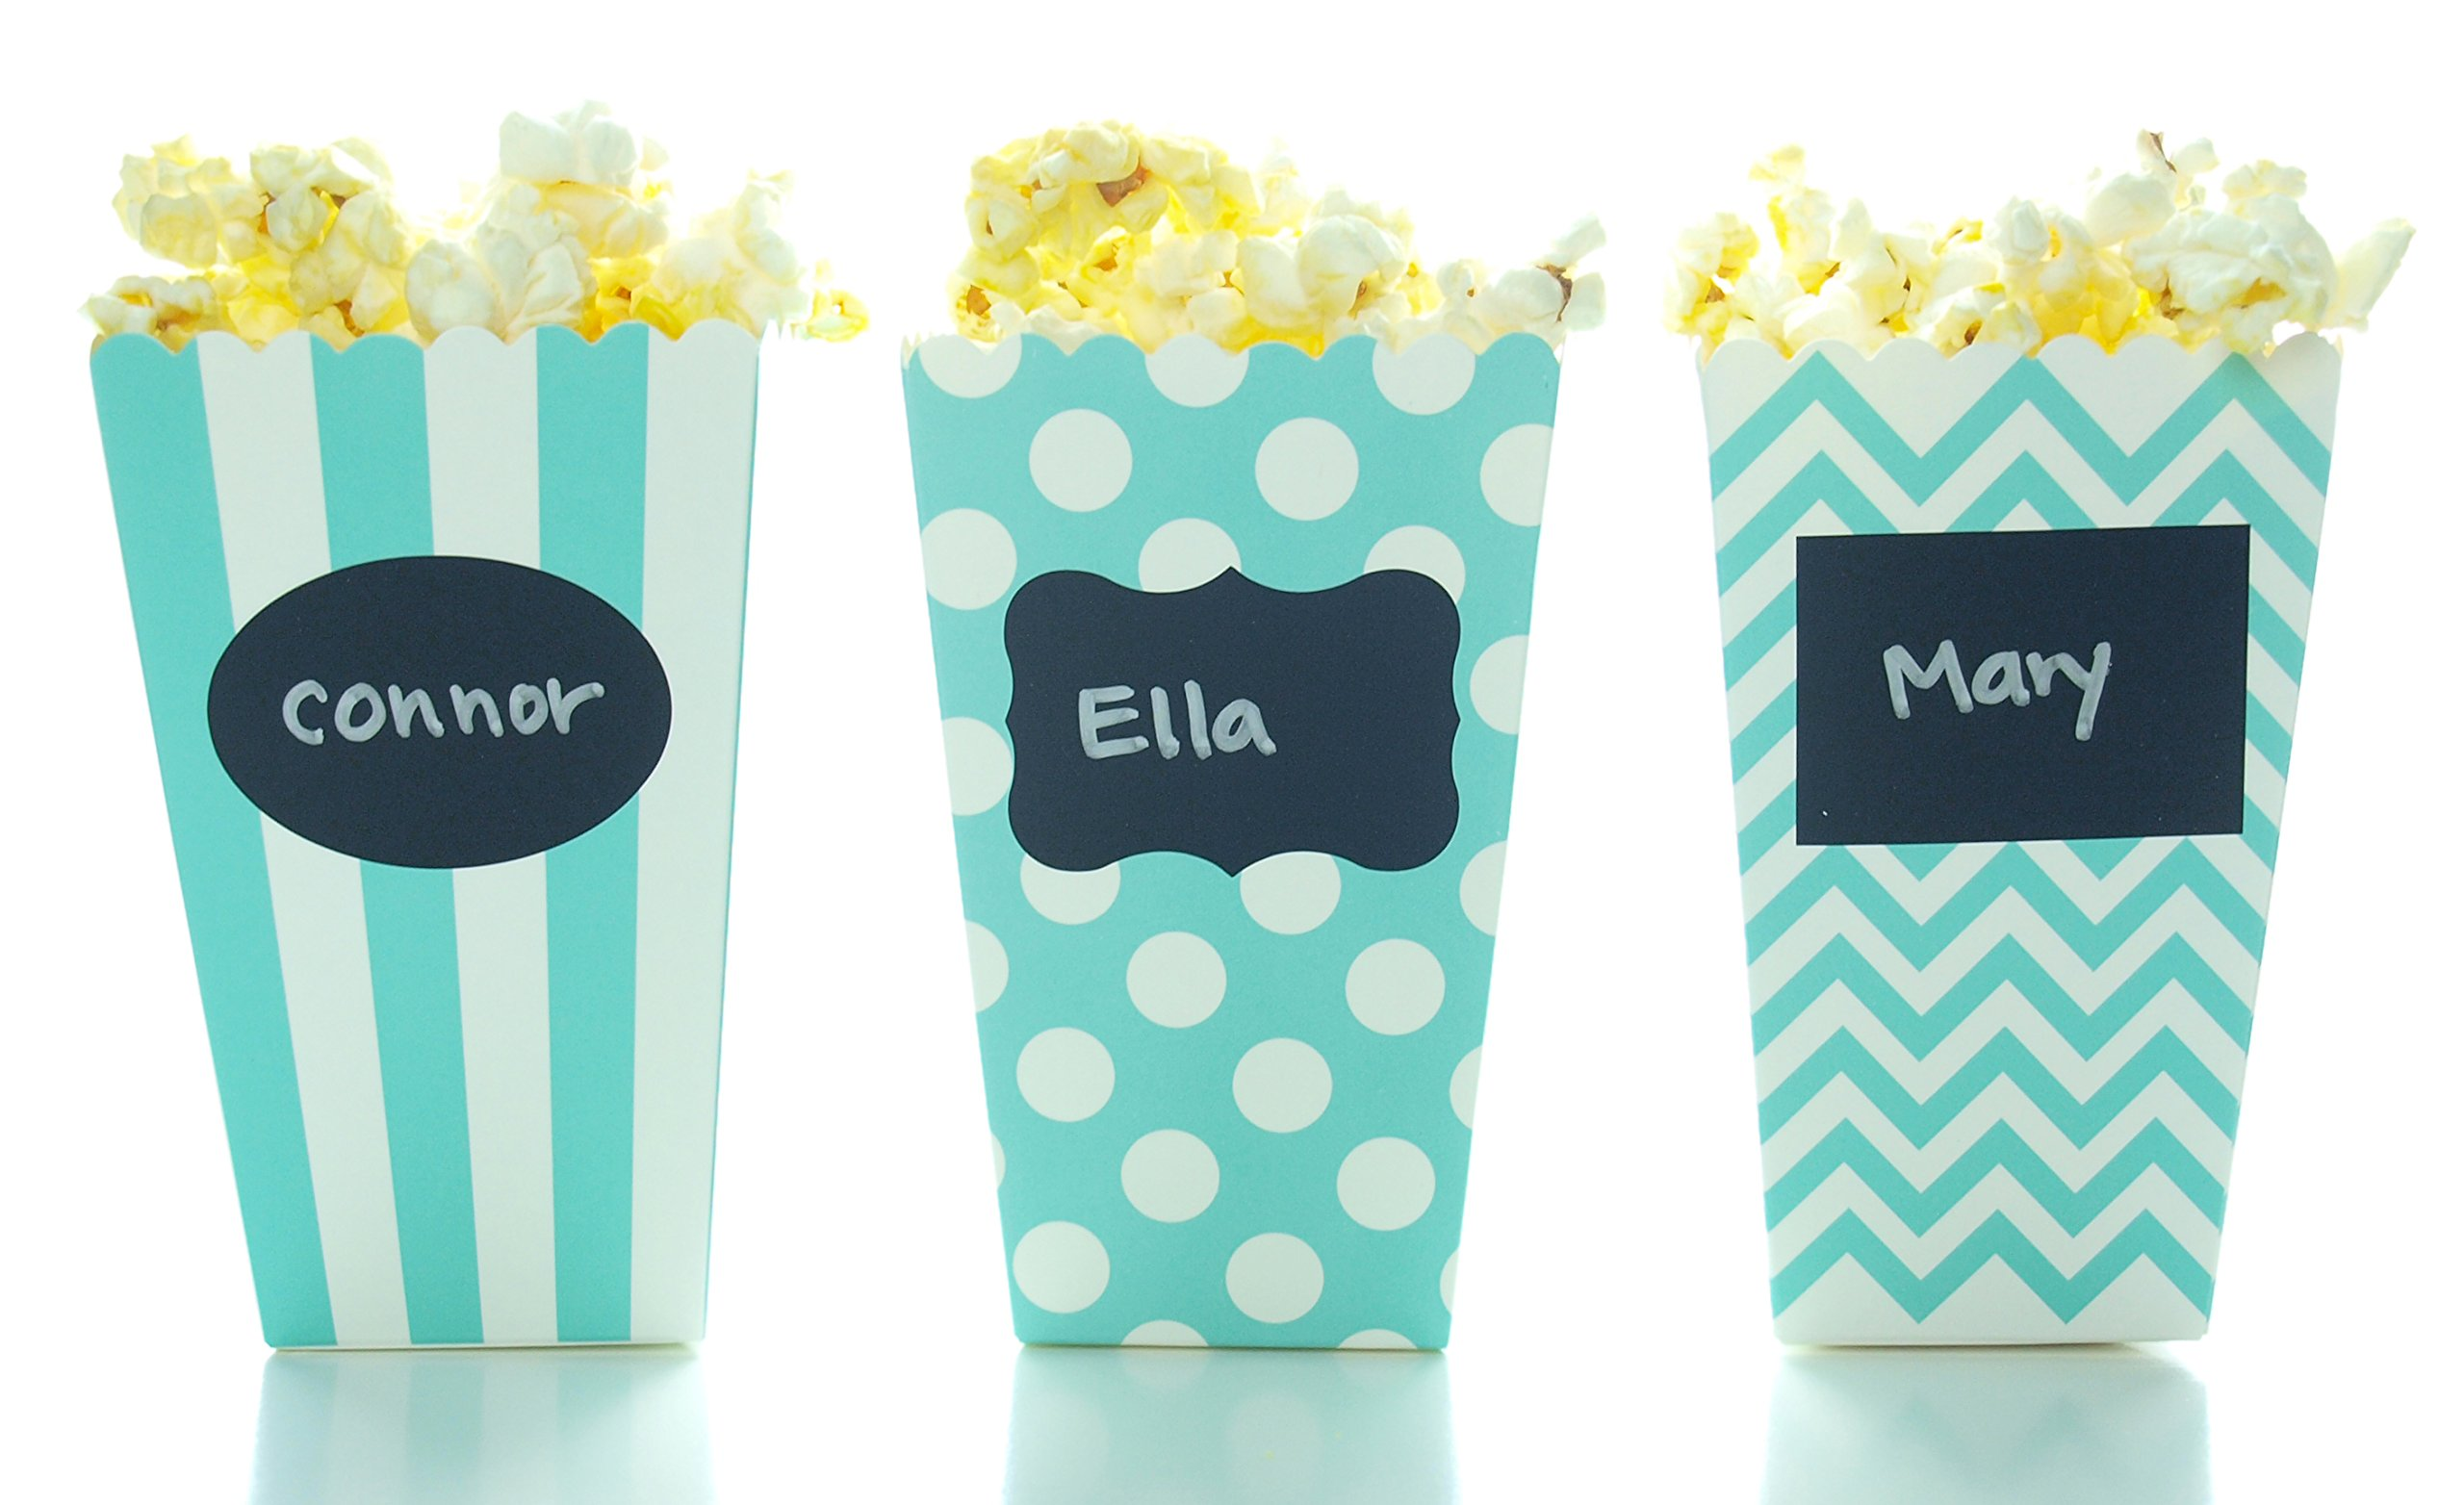 Aqua Blue Green Popcorn Boxes & Black Label Chalkboard Vinyl Stickers (36 Pack) - Party Favors & Wedding Candy Boxes, Use Decal Tag to Customize Party Favors, Small Popcorn Tub